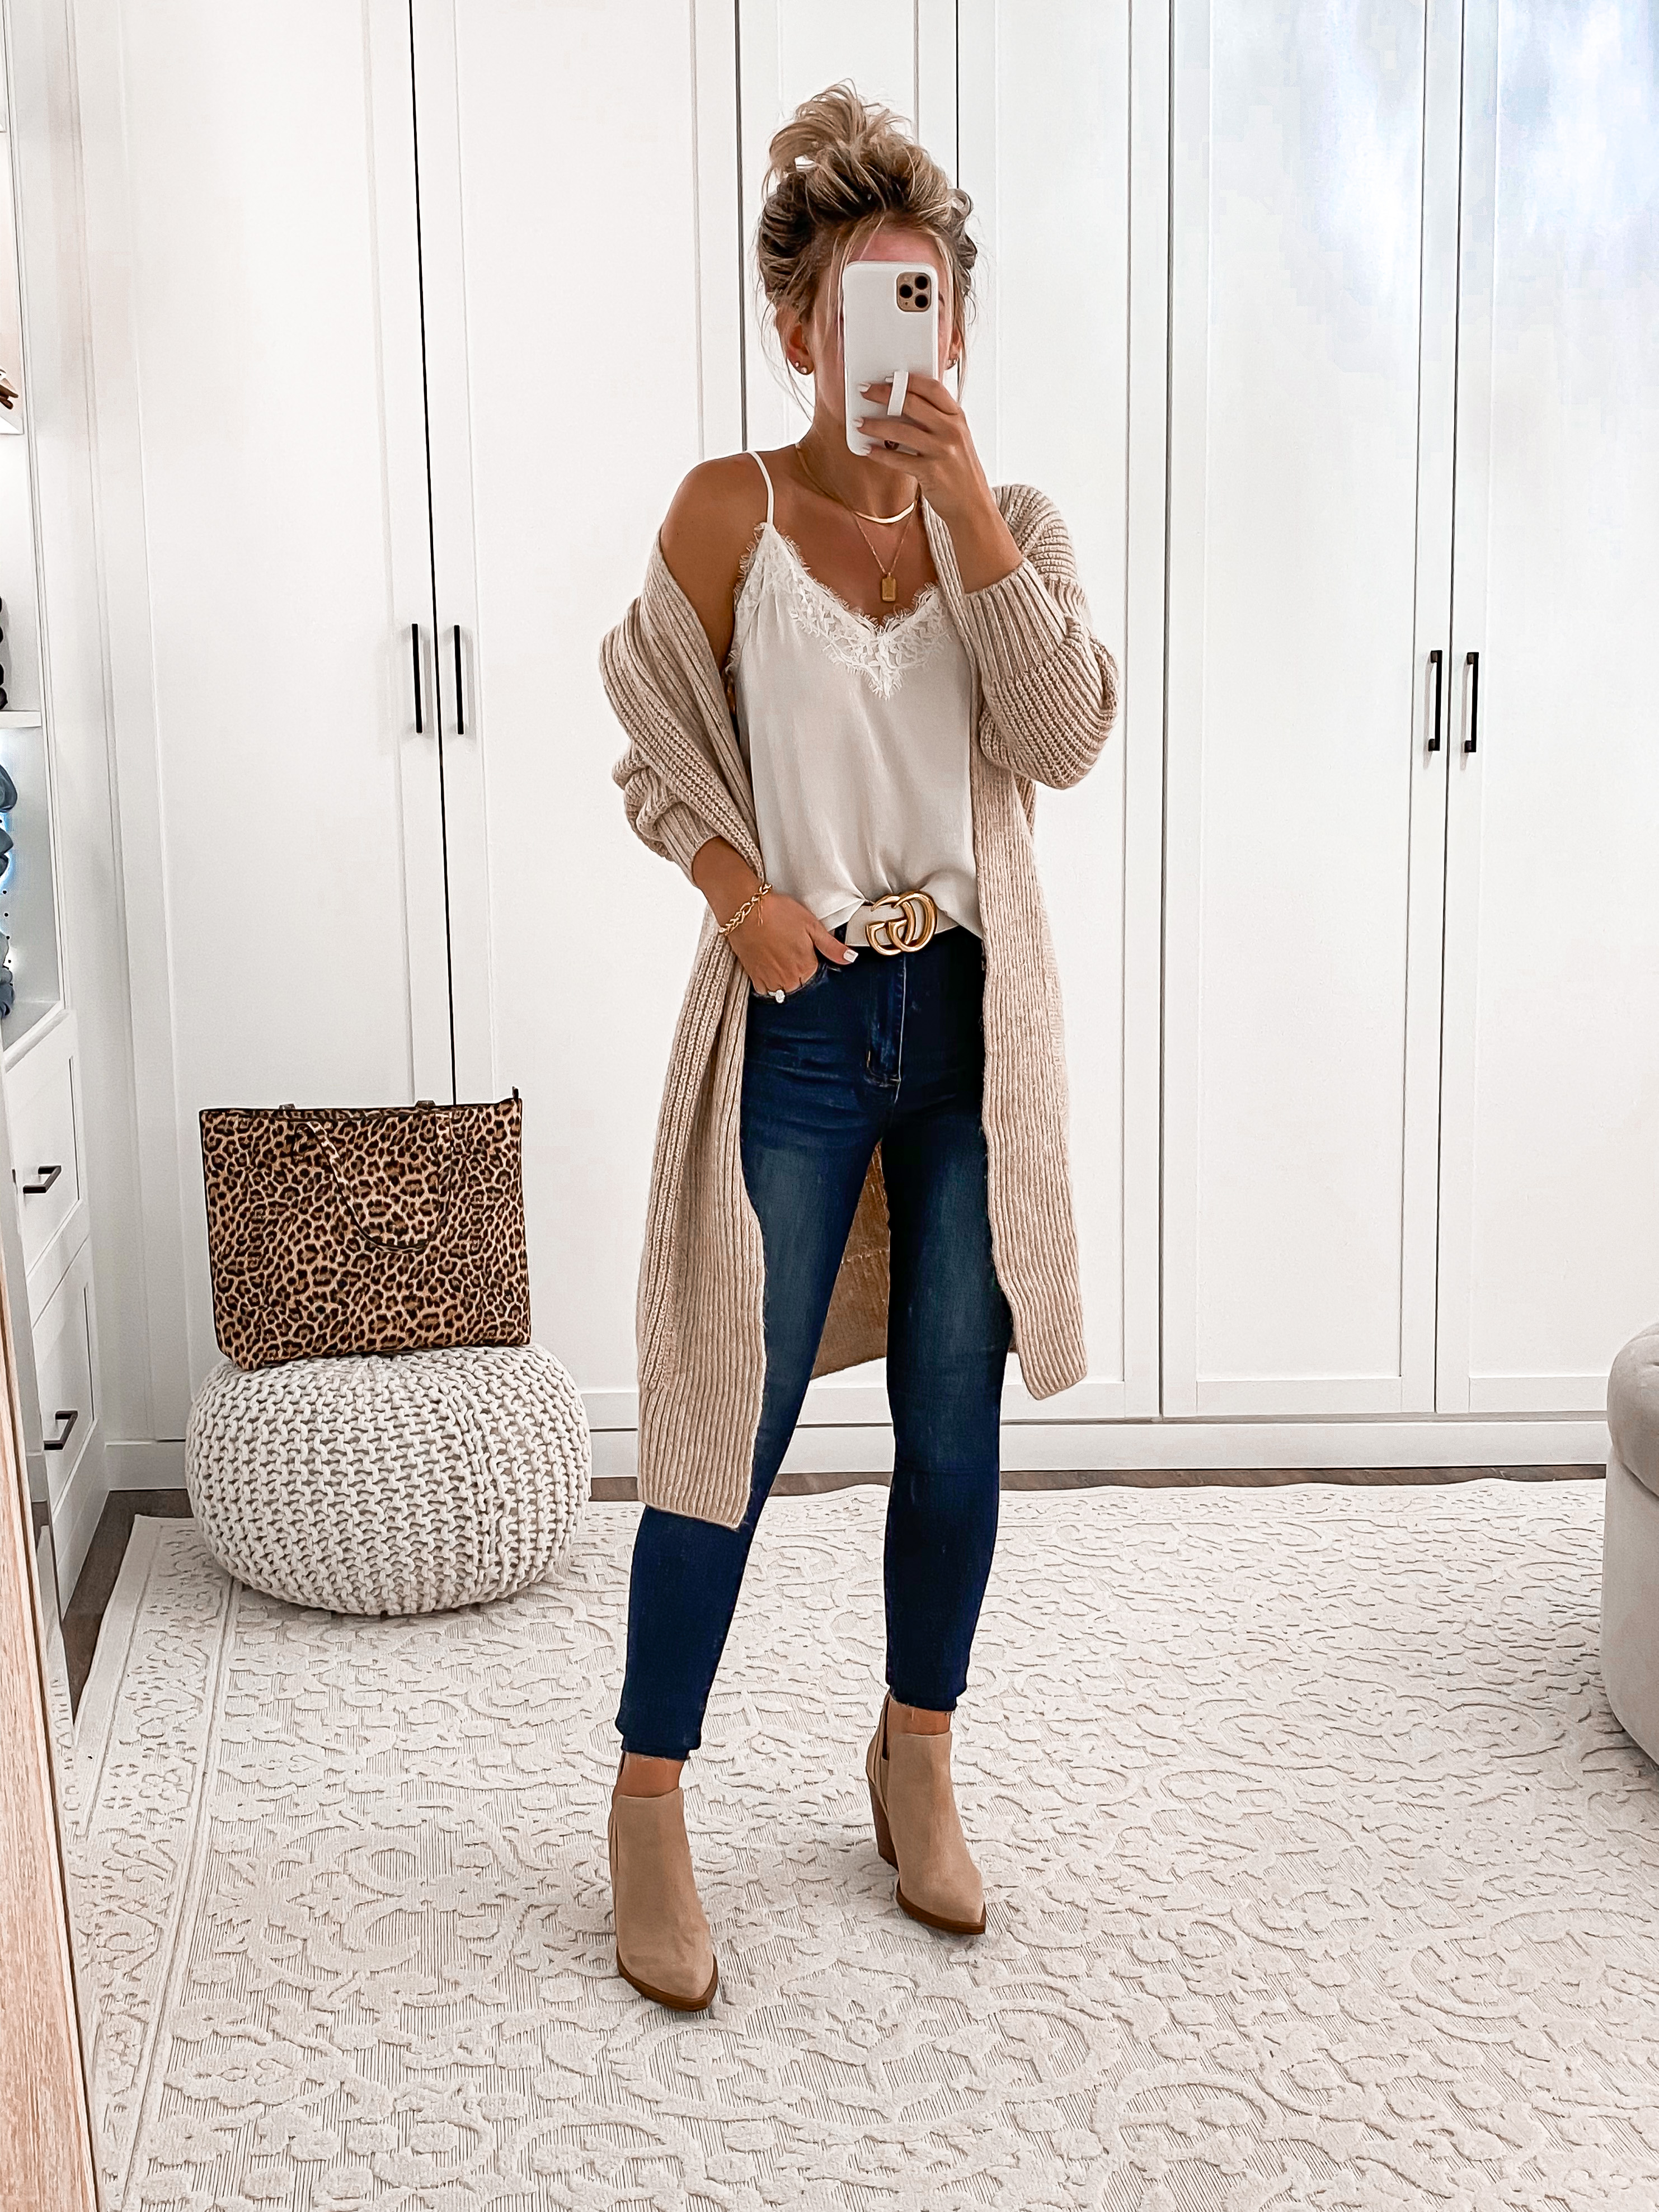 Nordstrom Anniversary Sale 2020 Nsale Laura Beverlin Fall outfit ideas11